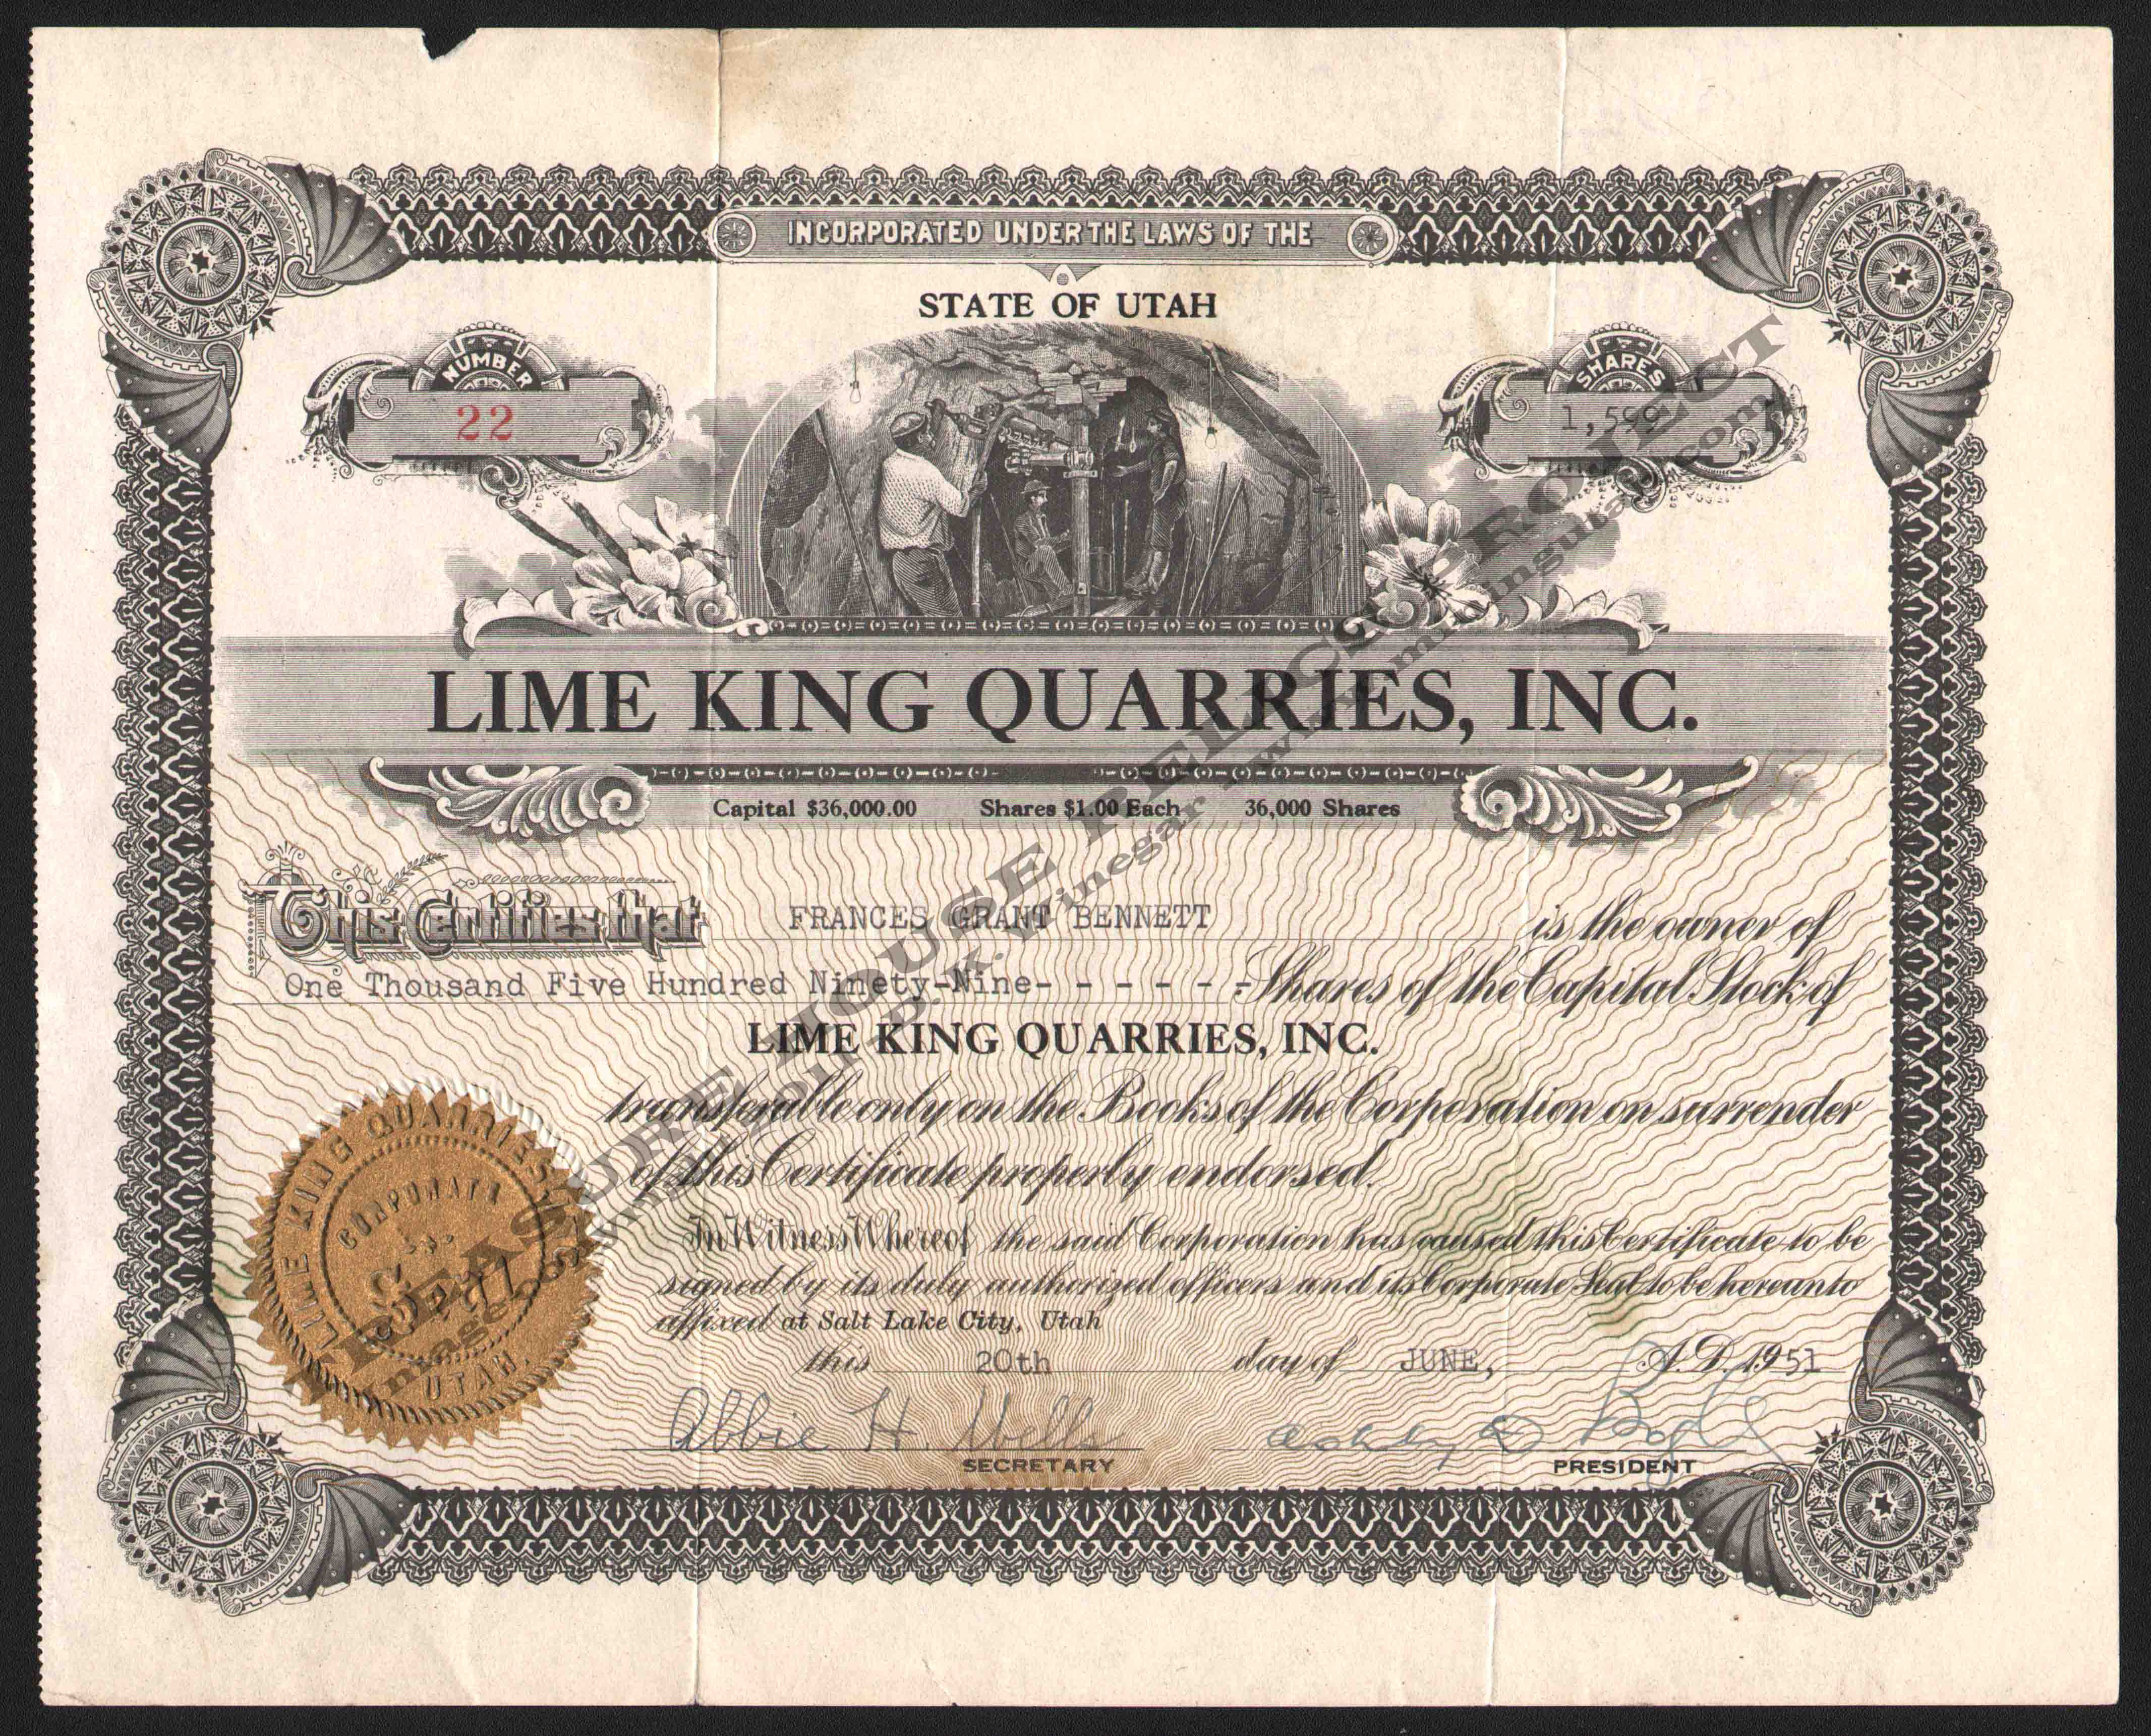 LIME_KING_QUARRIES_INC_23_400_emboss.jpg